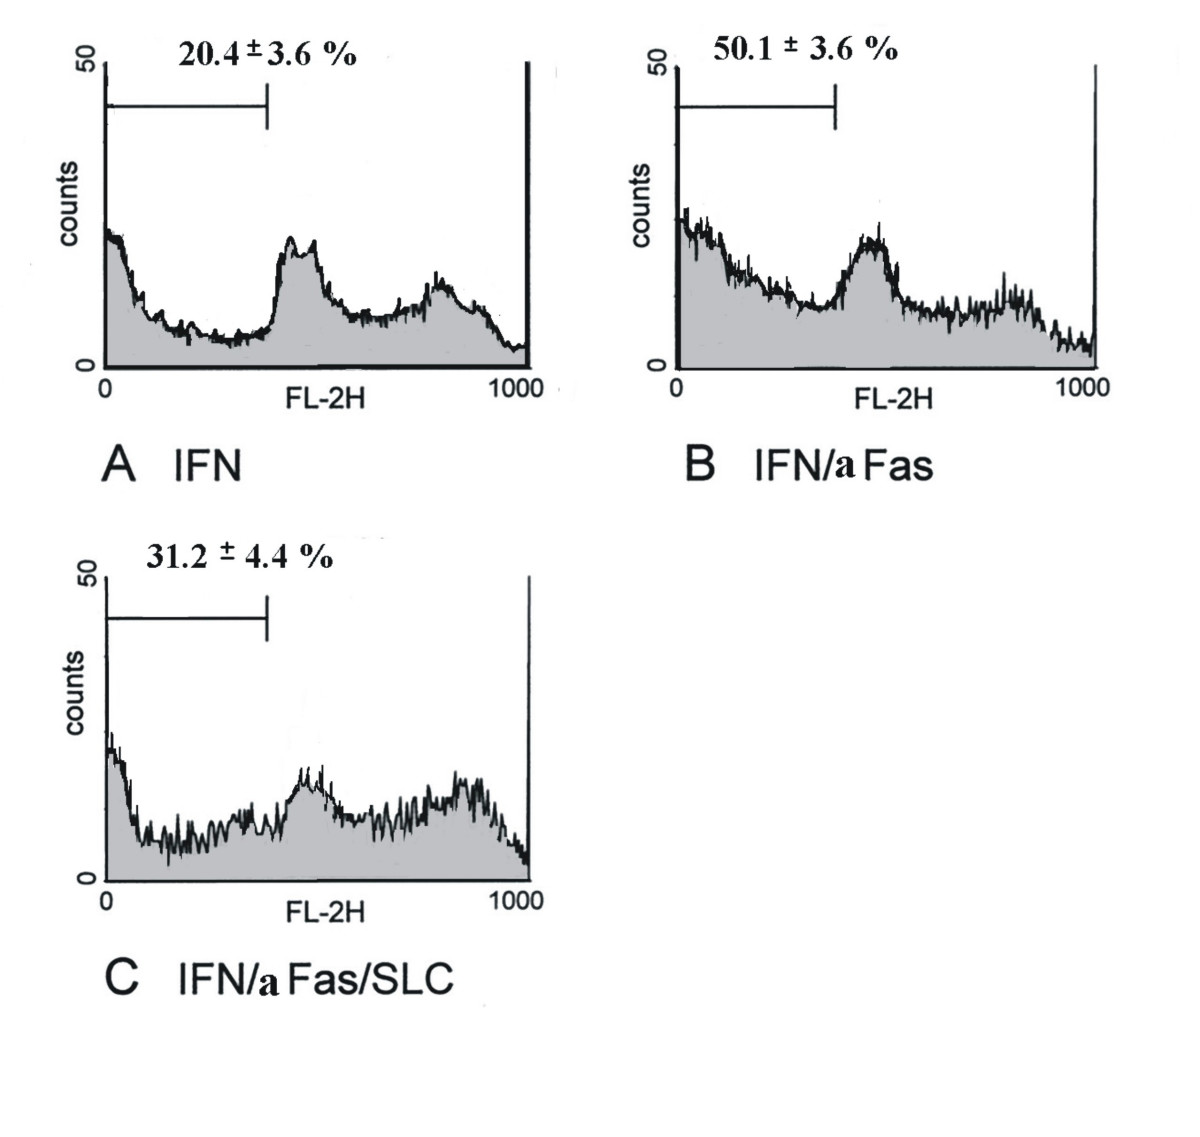 https://static-content.springer.com/image/art%3A10.1186%2F1471-2369-5-8/MediaObjects/12882_2004_Article_31_Fig4_HTML.jpg